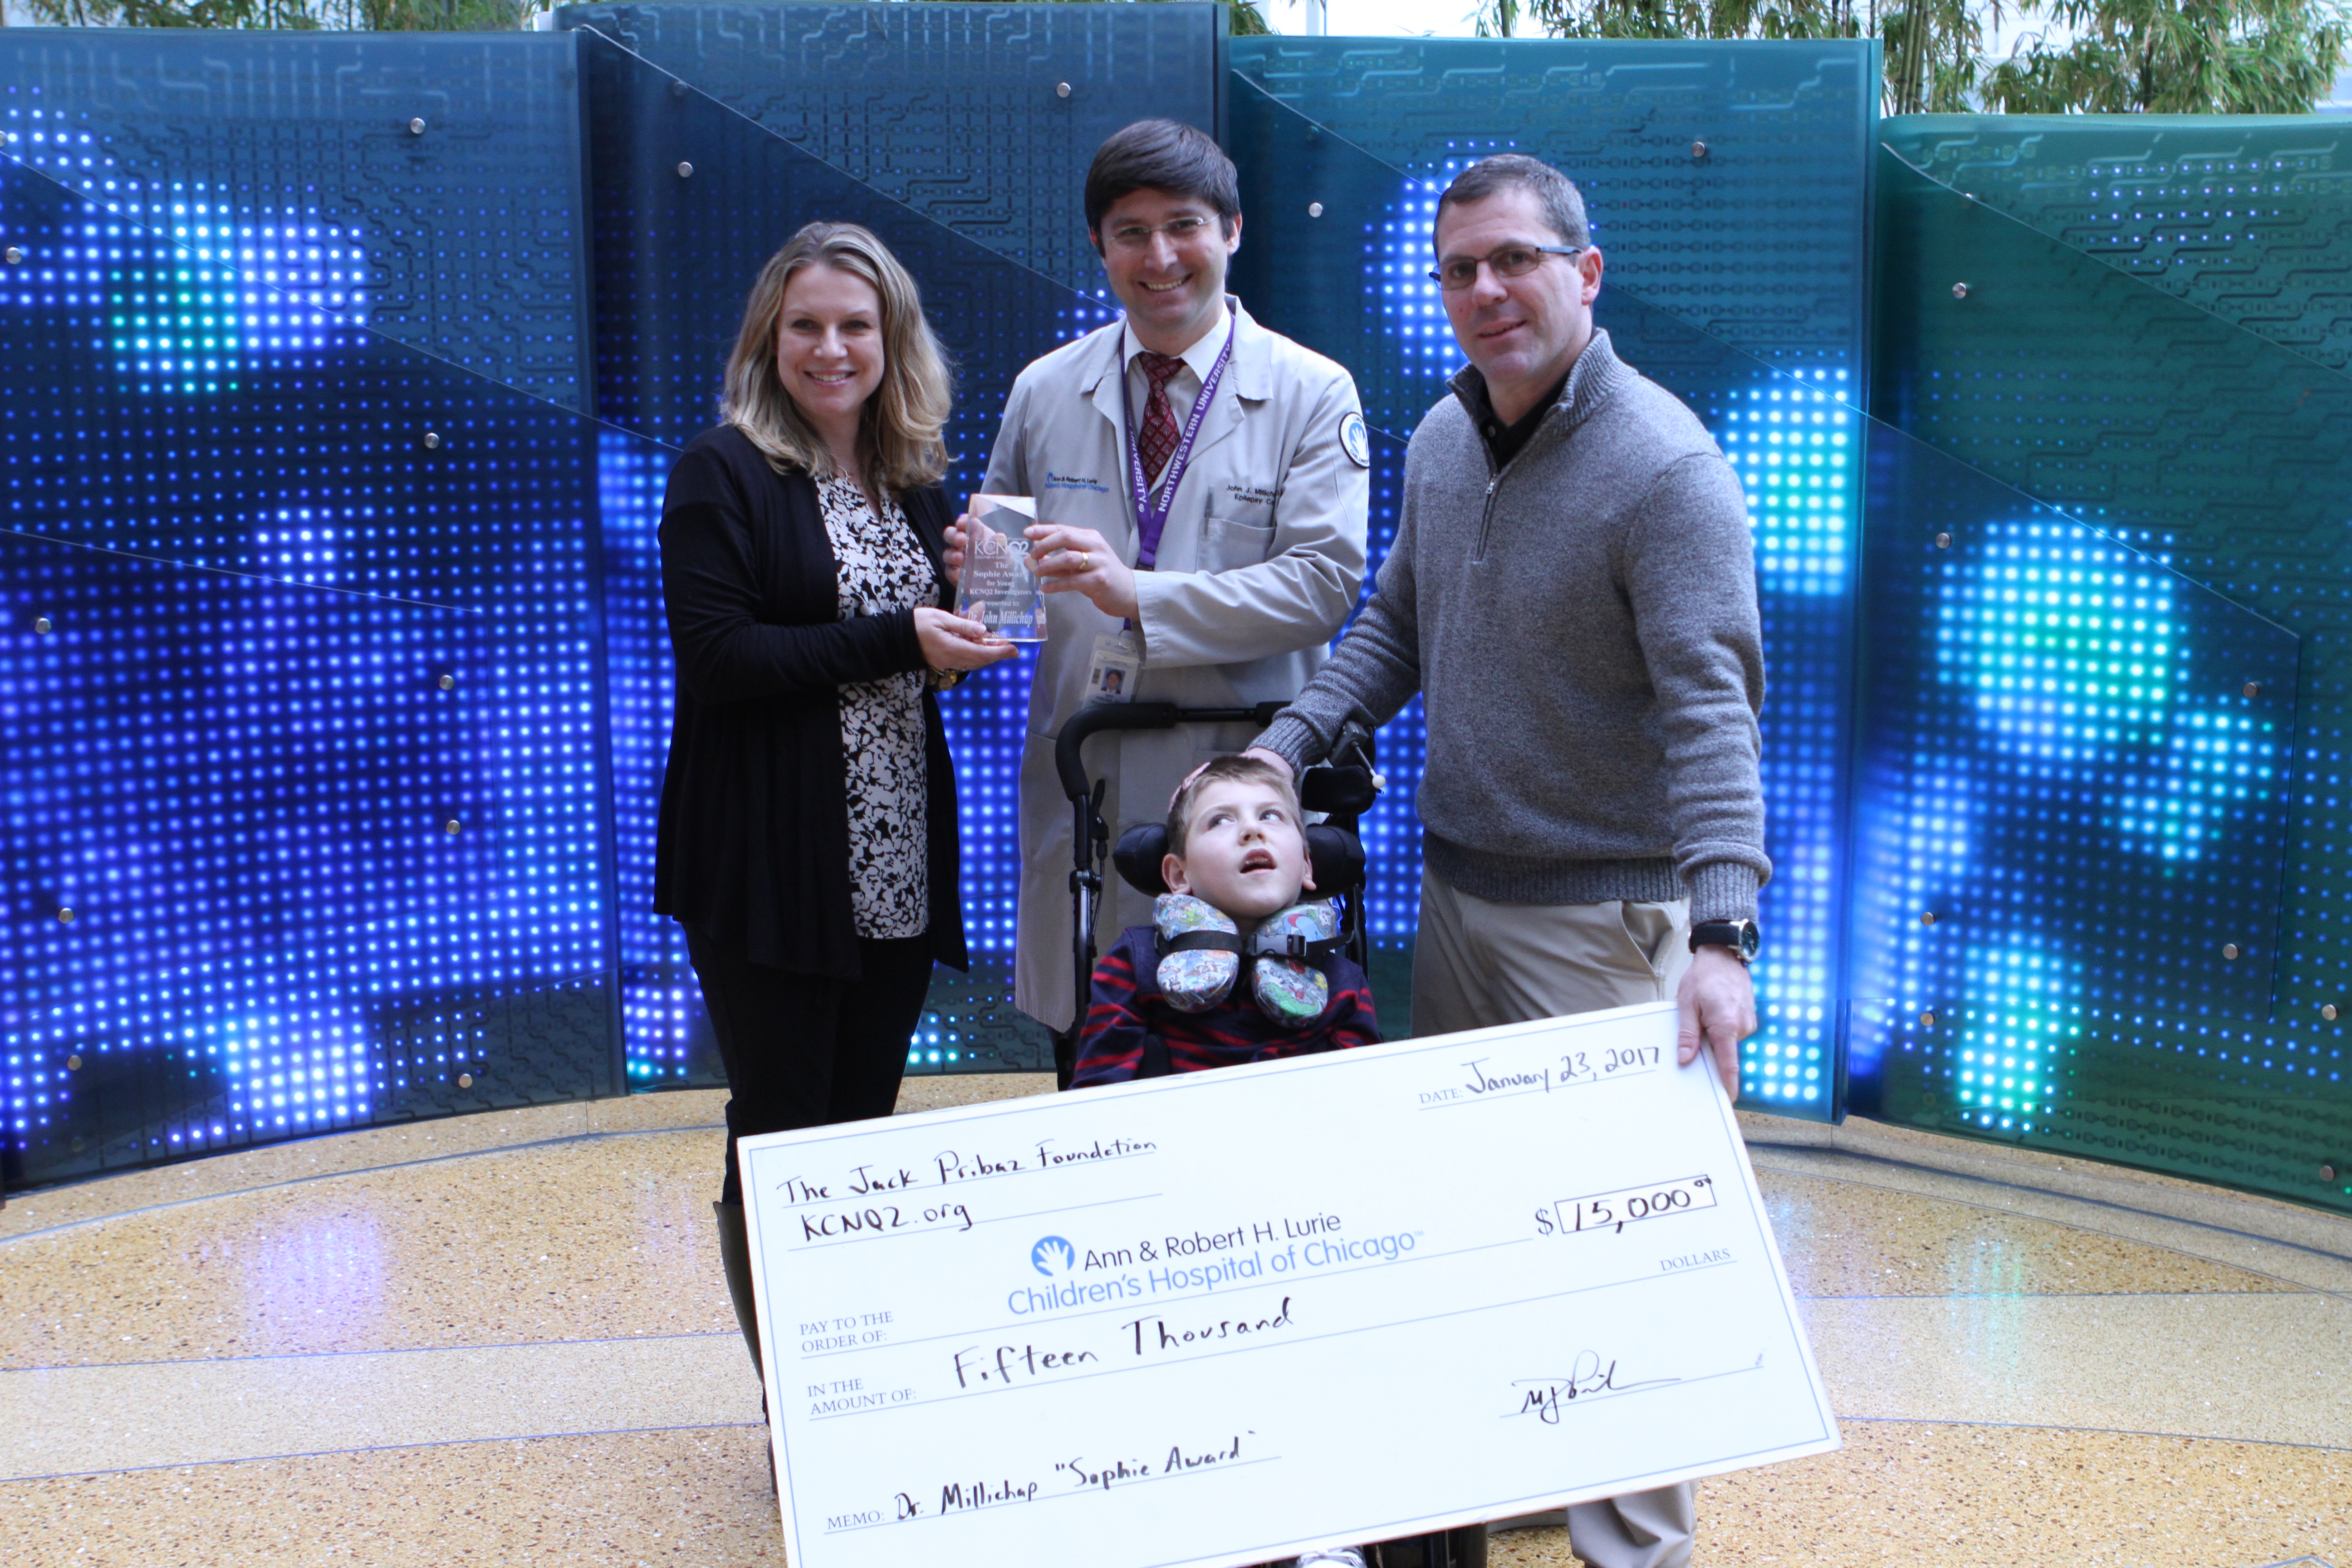 Liz Pribaz presents Dr. John Millichap with the first ever Sophie Award for Young KCNQ2 Investigators on January 23, 2016, at Lurie Childrens' Hospital in Chicago. Mike Pribaz and son Jack hand off the big check.